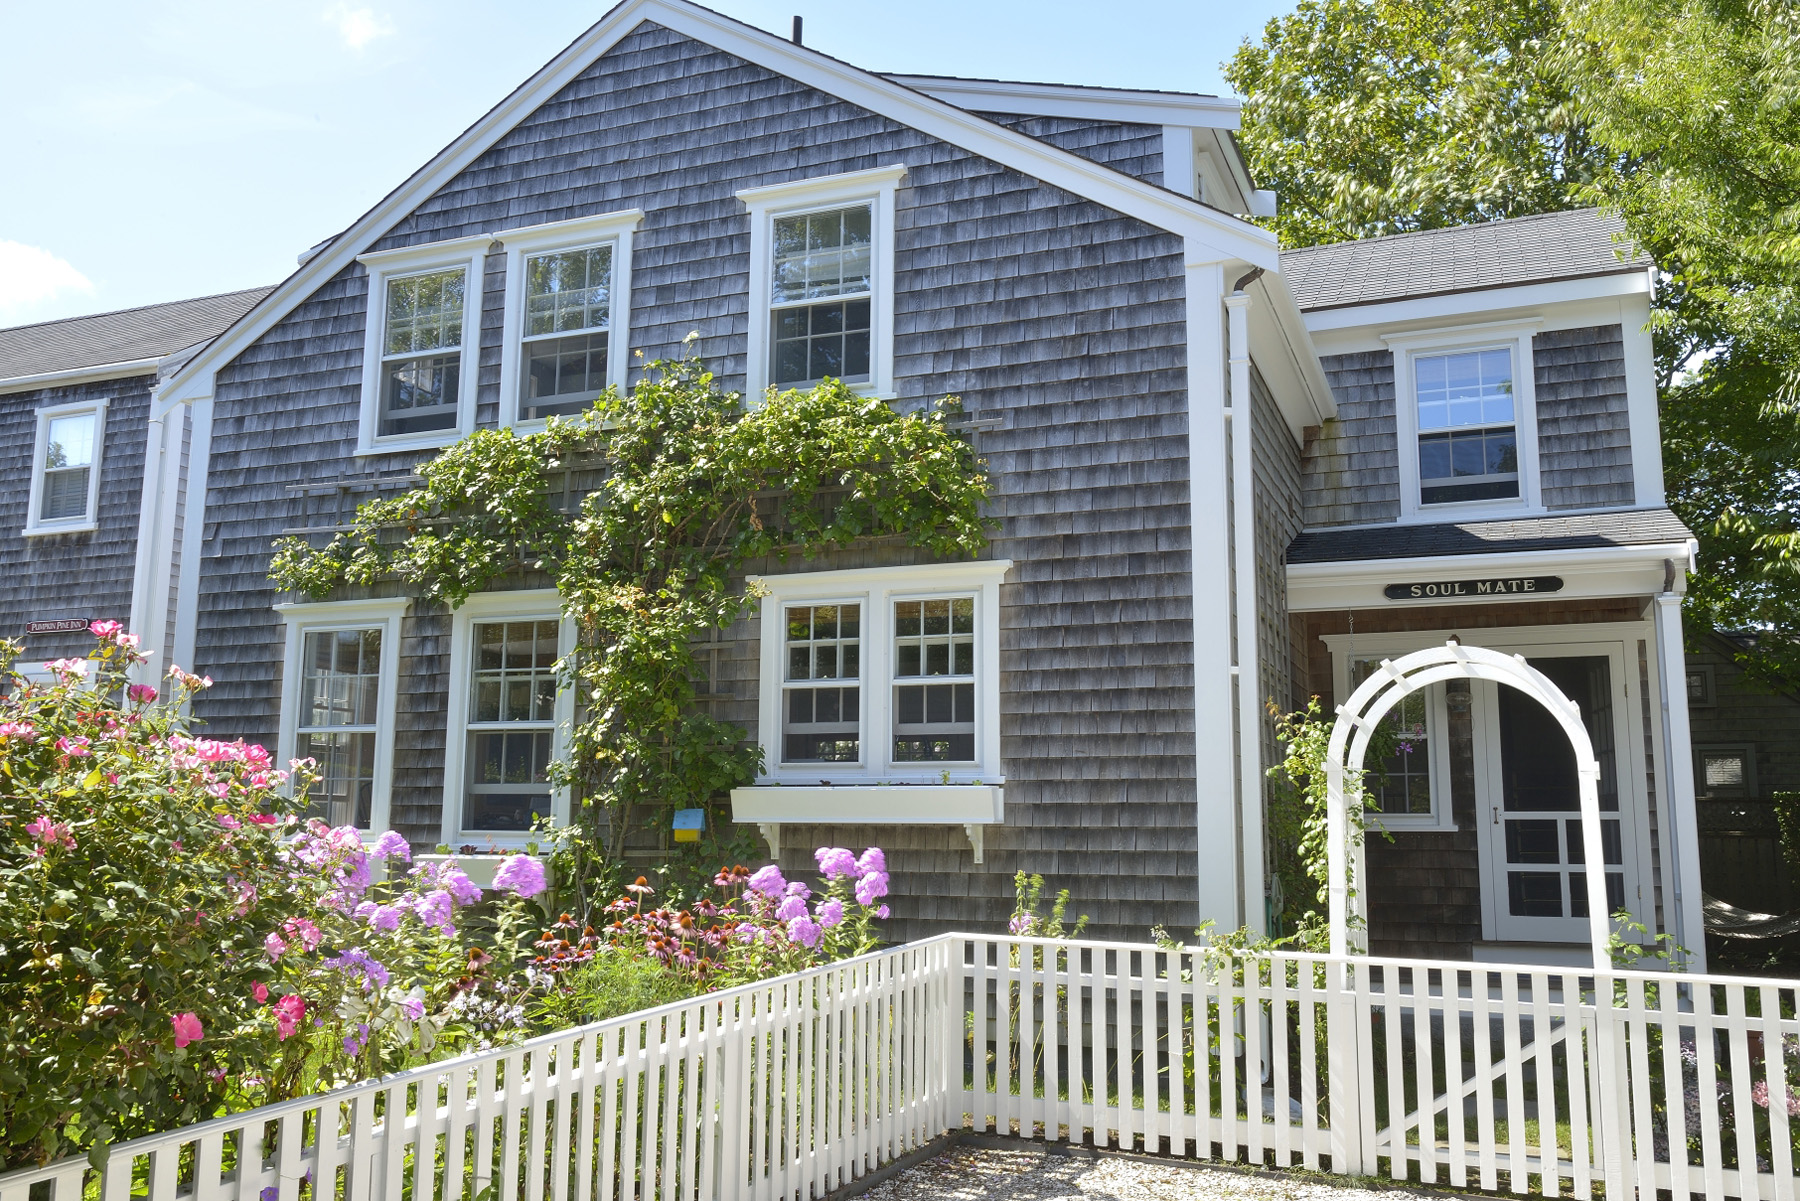 Condominium for Sale at Perfect in town Pied A Terre 11 Spring Street Unit 3 Nantucket, Massachusetts, 02554 United States